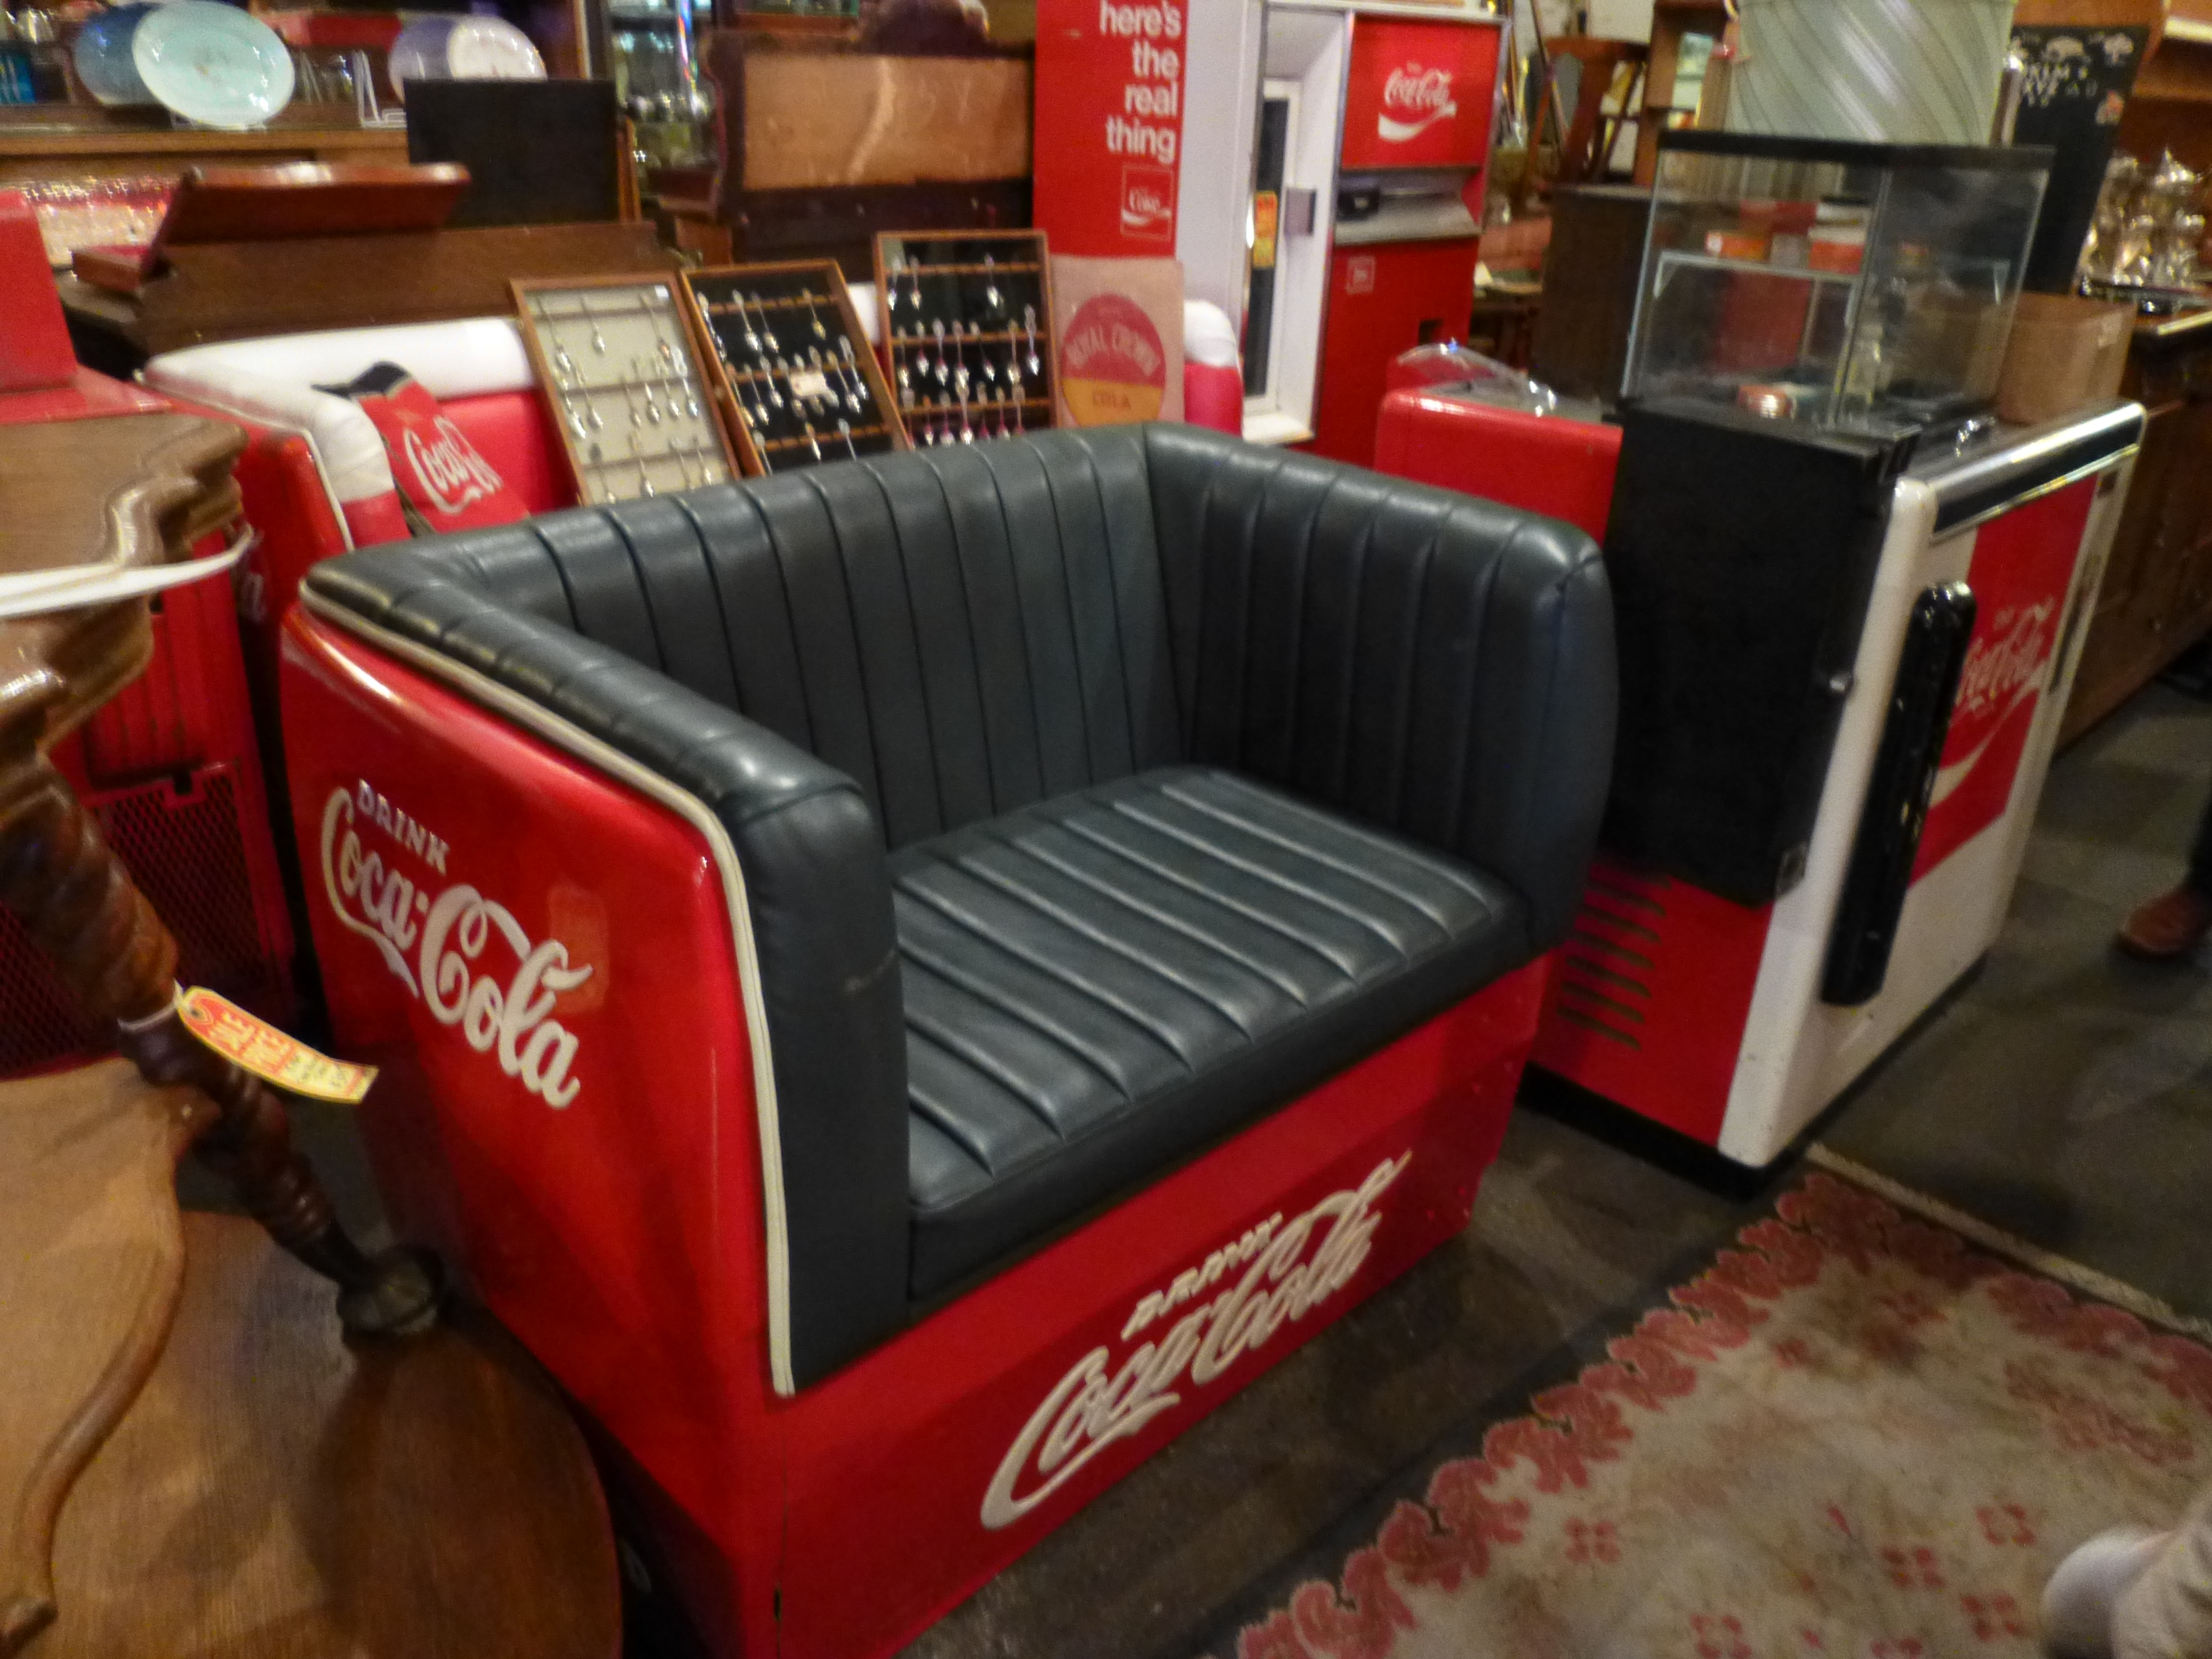 Coca Cola Table And Chairs Vintage Coca Cola Cooler Furniture The Worley Gig